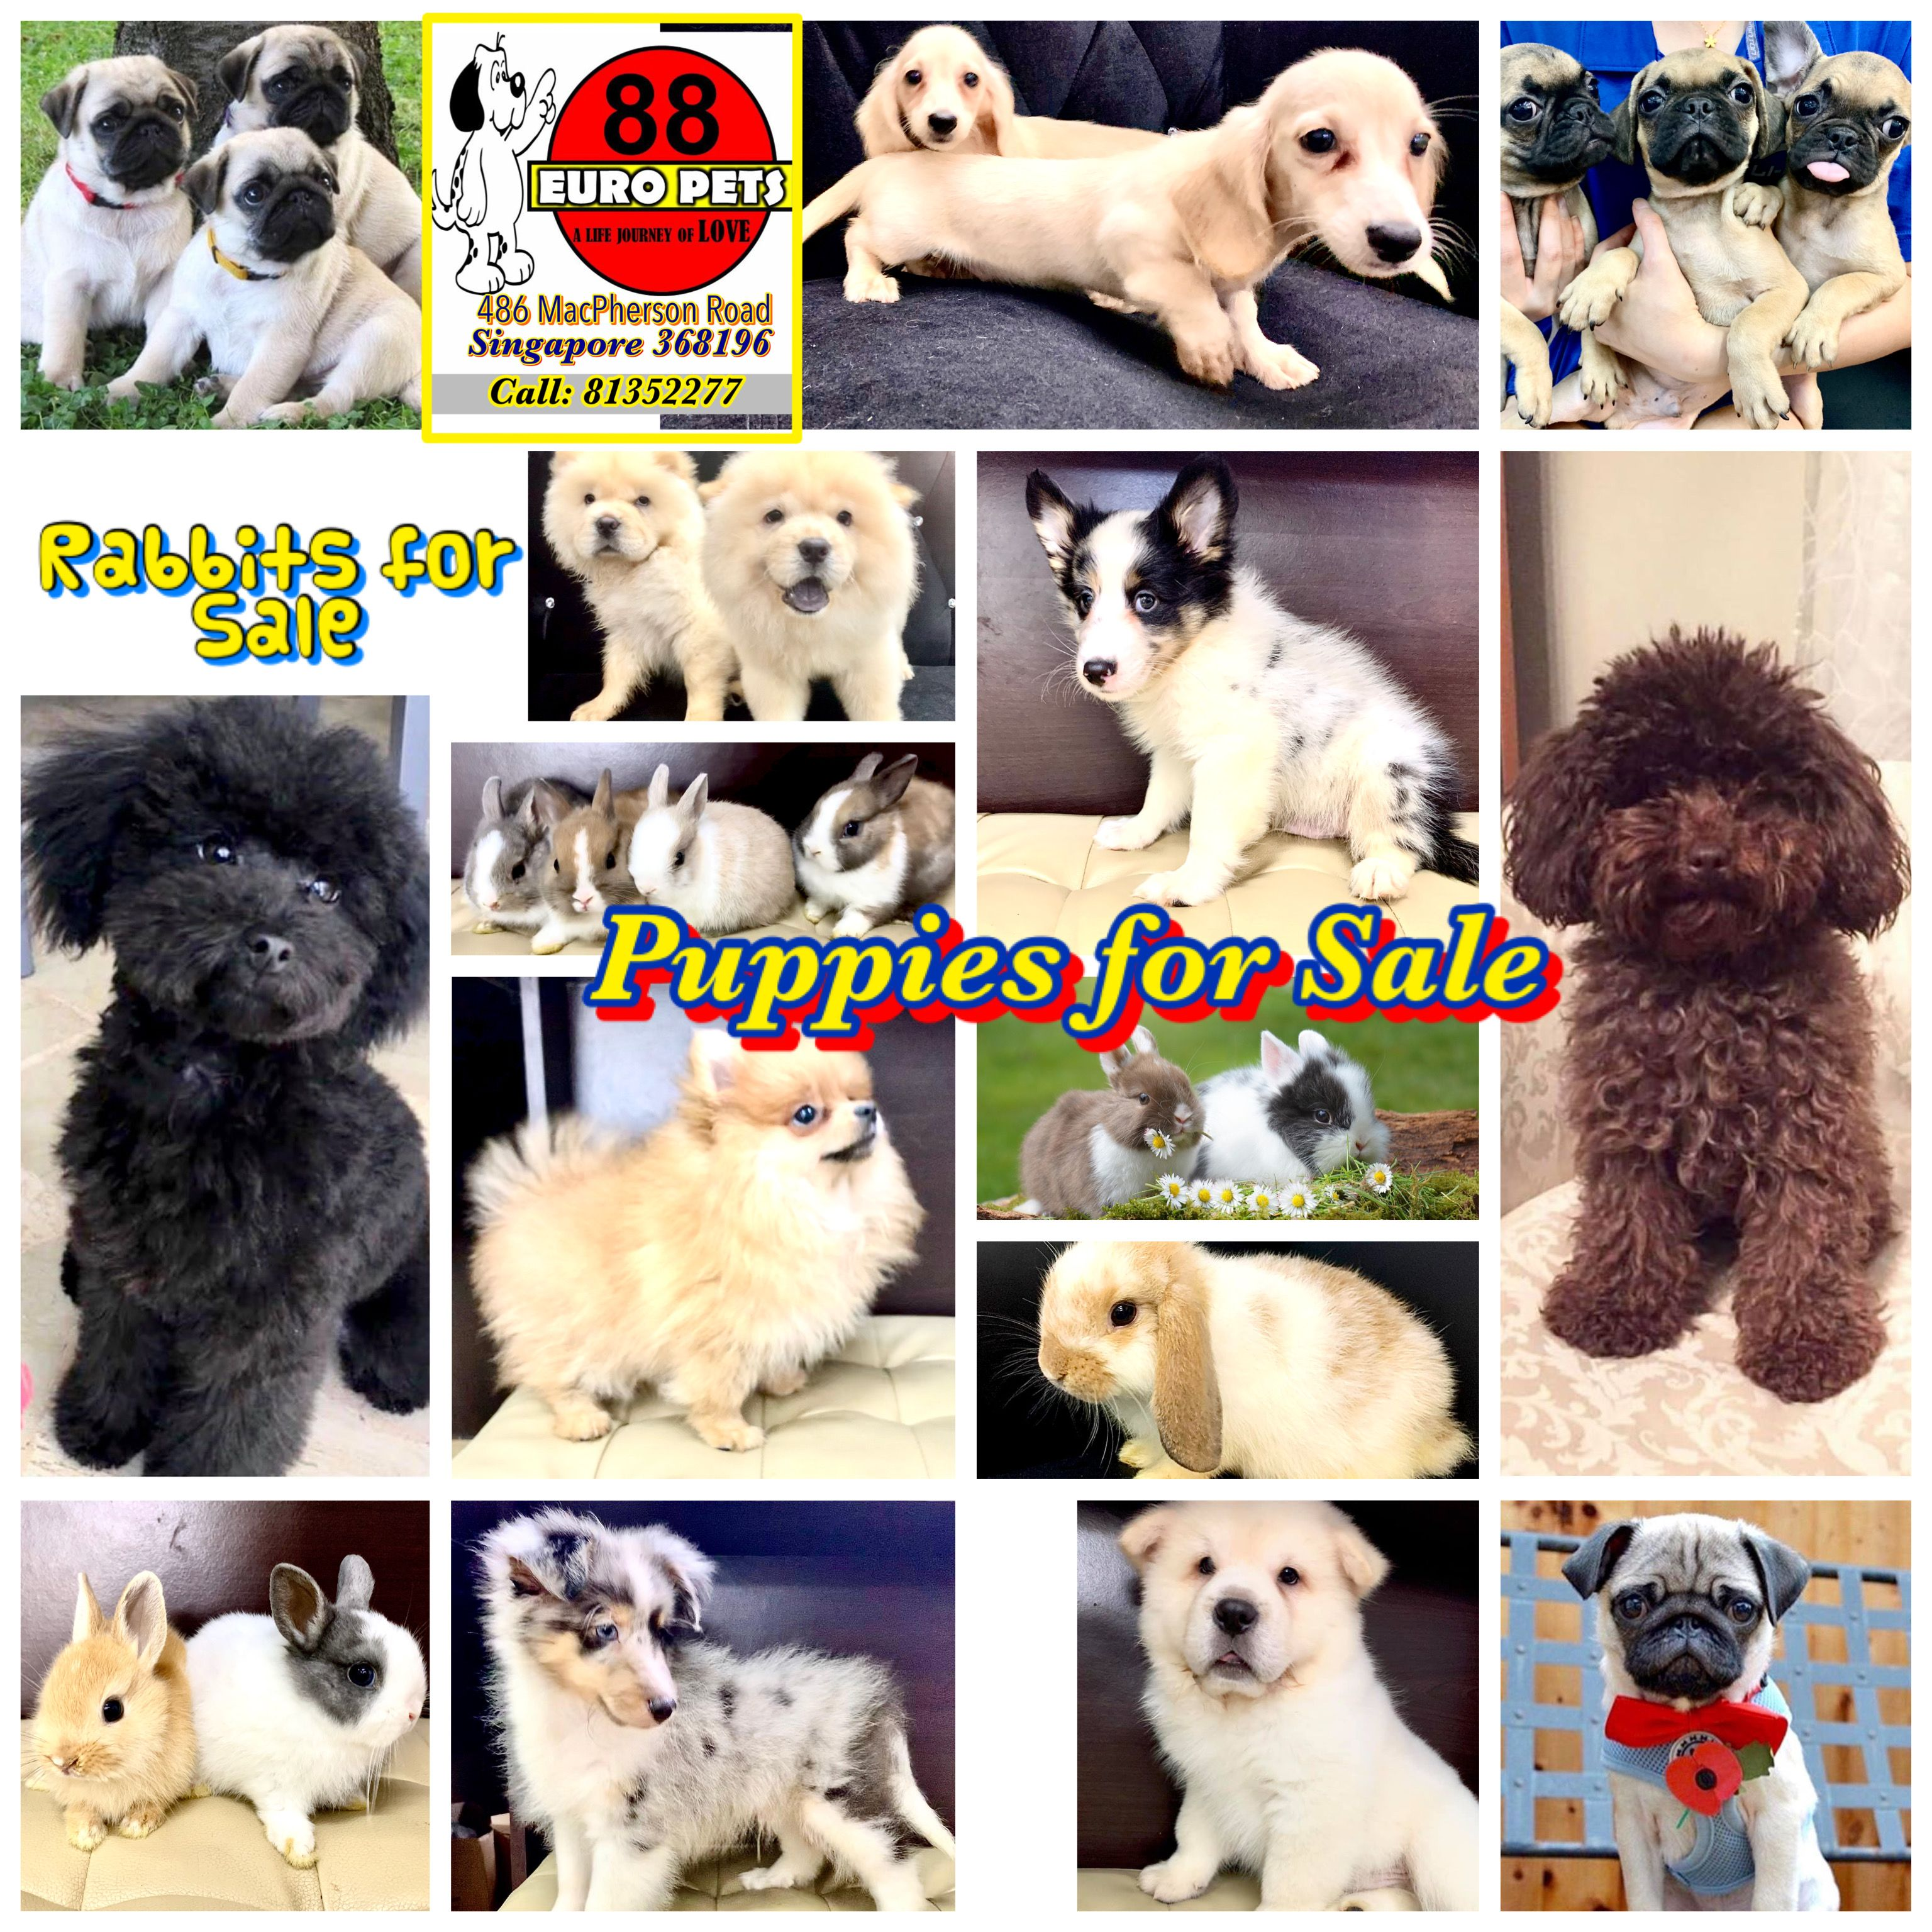 Puppies And Rabbits For Sale Holland Lop Pug Toy Poodle Maltipoo